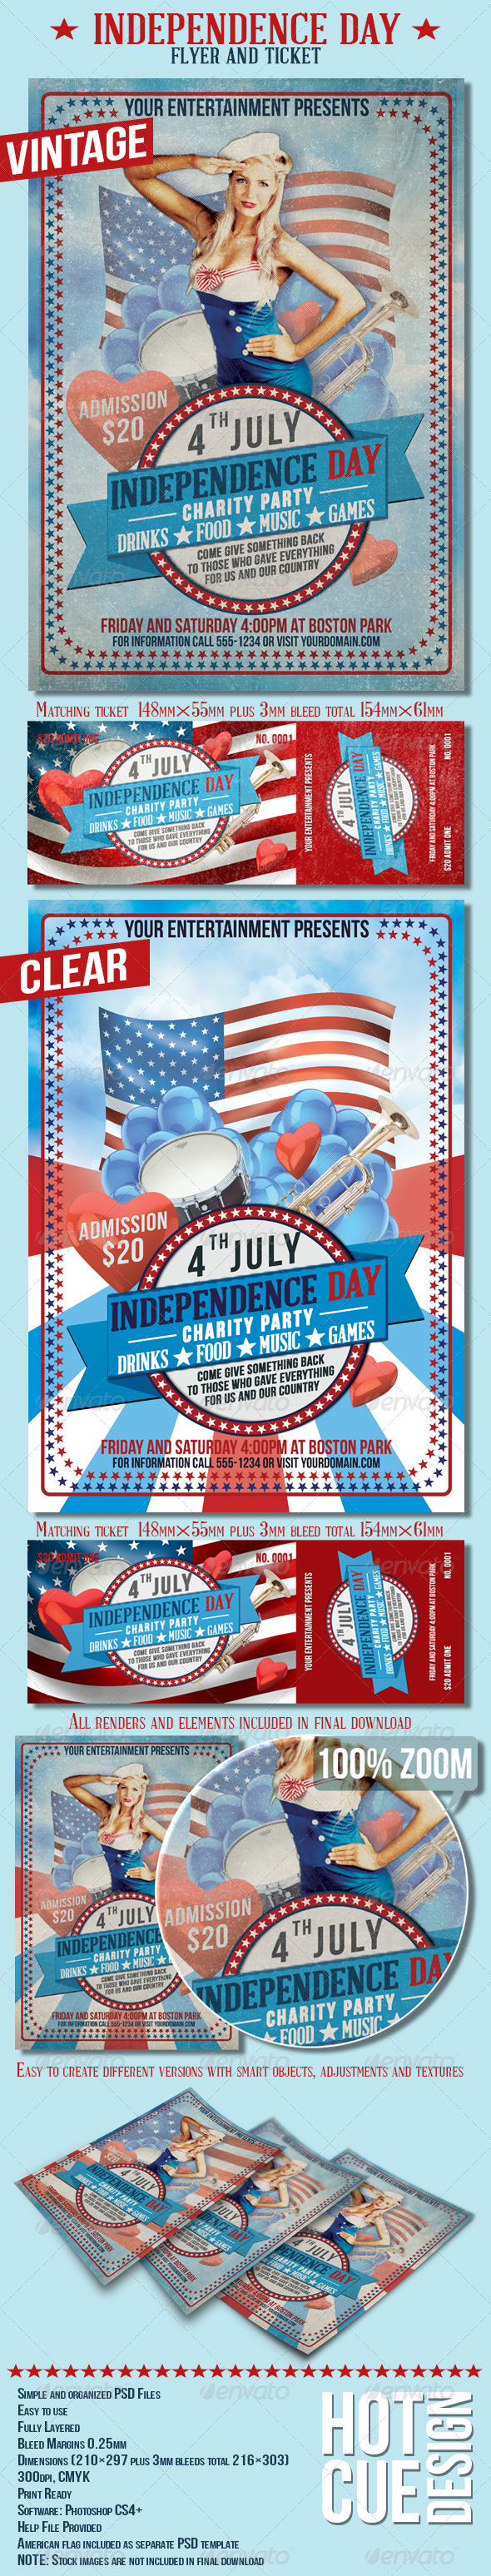 4th July Independence Day Flyer And Ticket